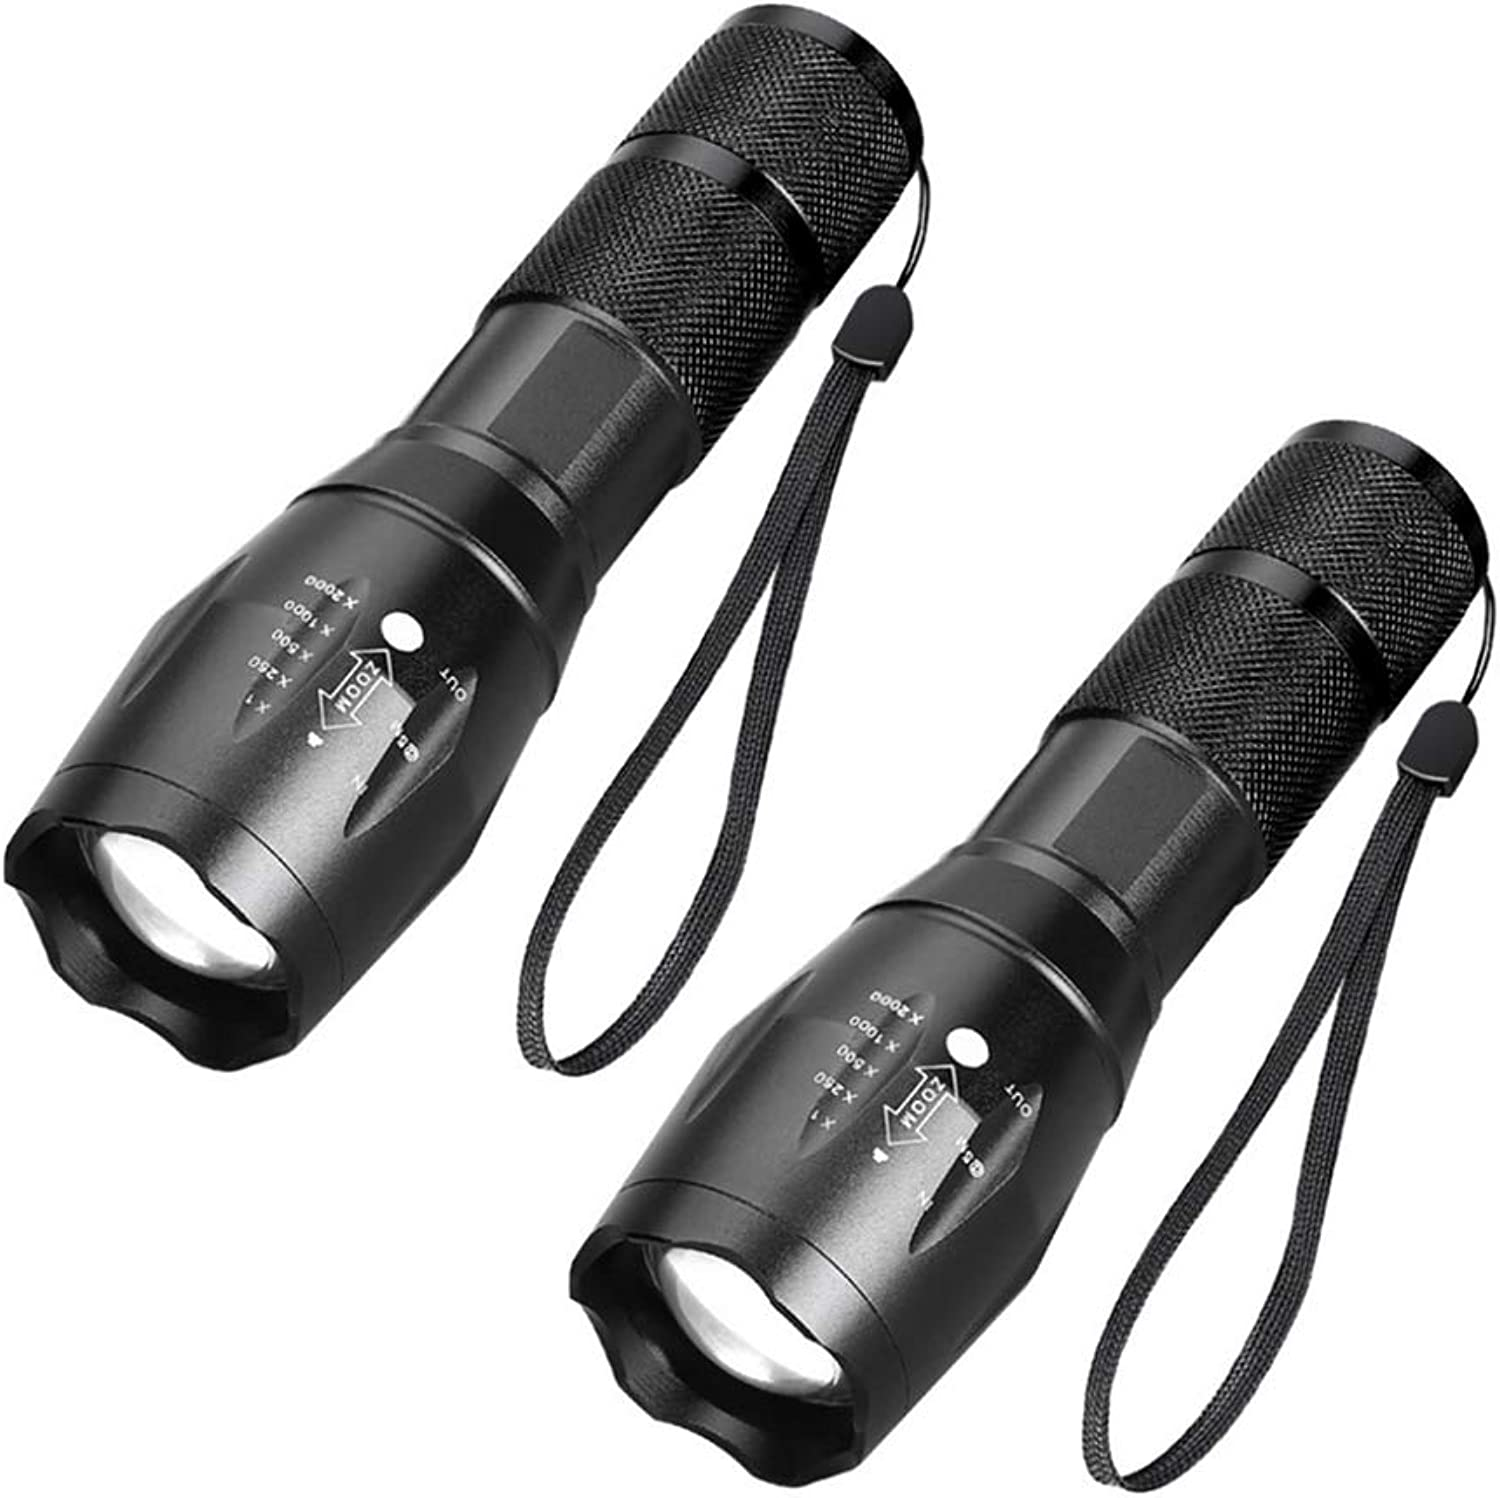 Portable Handheld LED Flashlight Adjustable Focus 5 Light Mode Outdoor Waterproof Tactical Spotlight